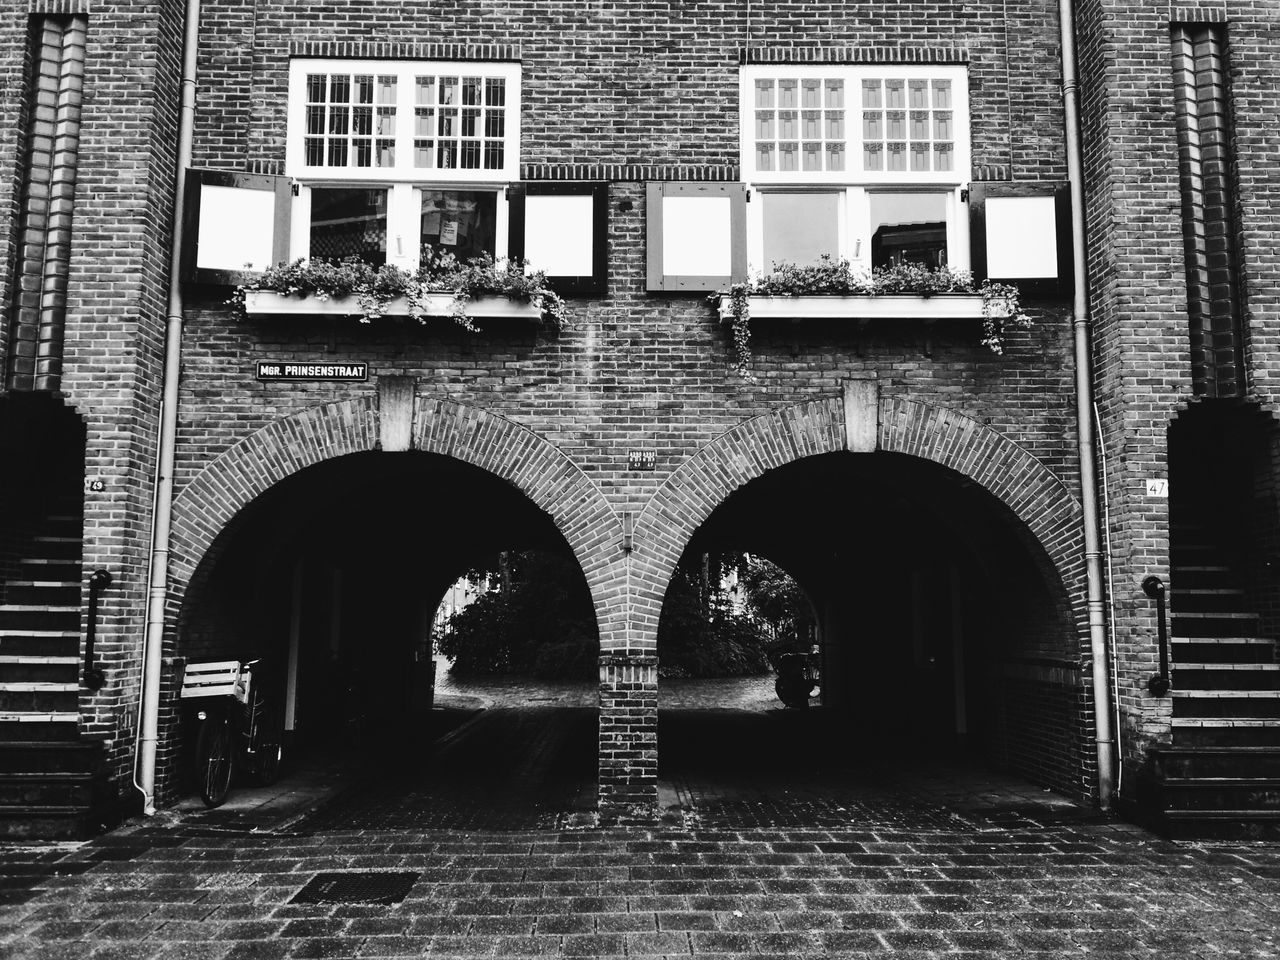 Architecture Architecture_collection Bow Dutch Architecture Walk Through Brick Wall Houses Houses And Windows City City Street Den Bosch The Netherlands Holland